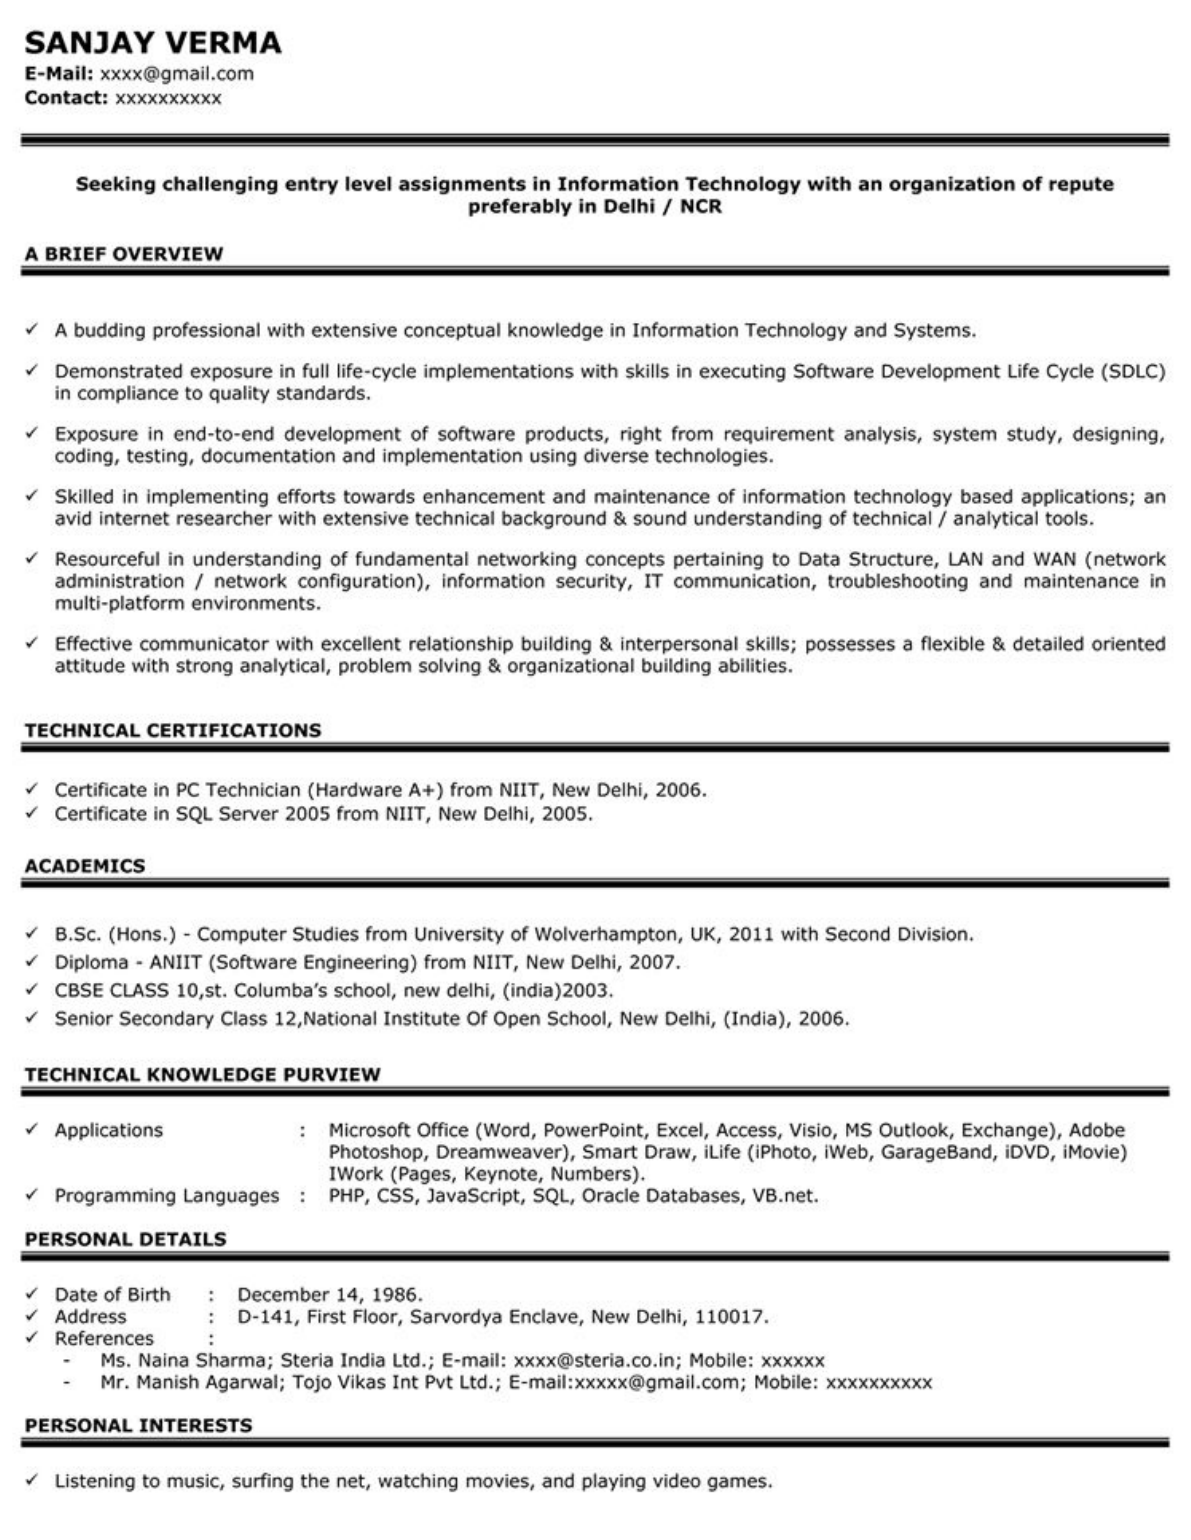 Download sample resume for freshers 1 for free tidyform sample resume for freshers 1 yadclub Images